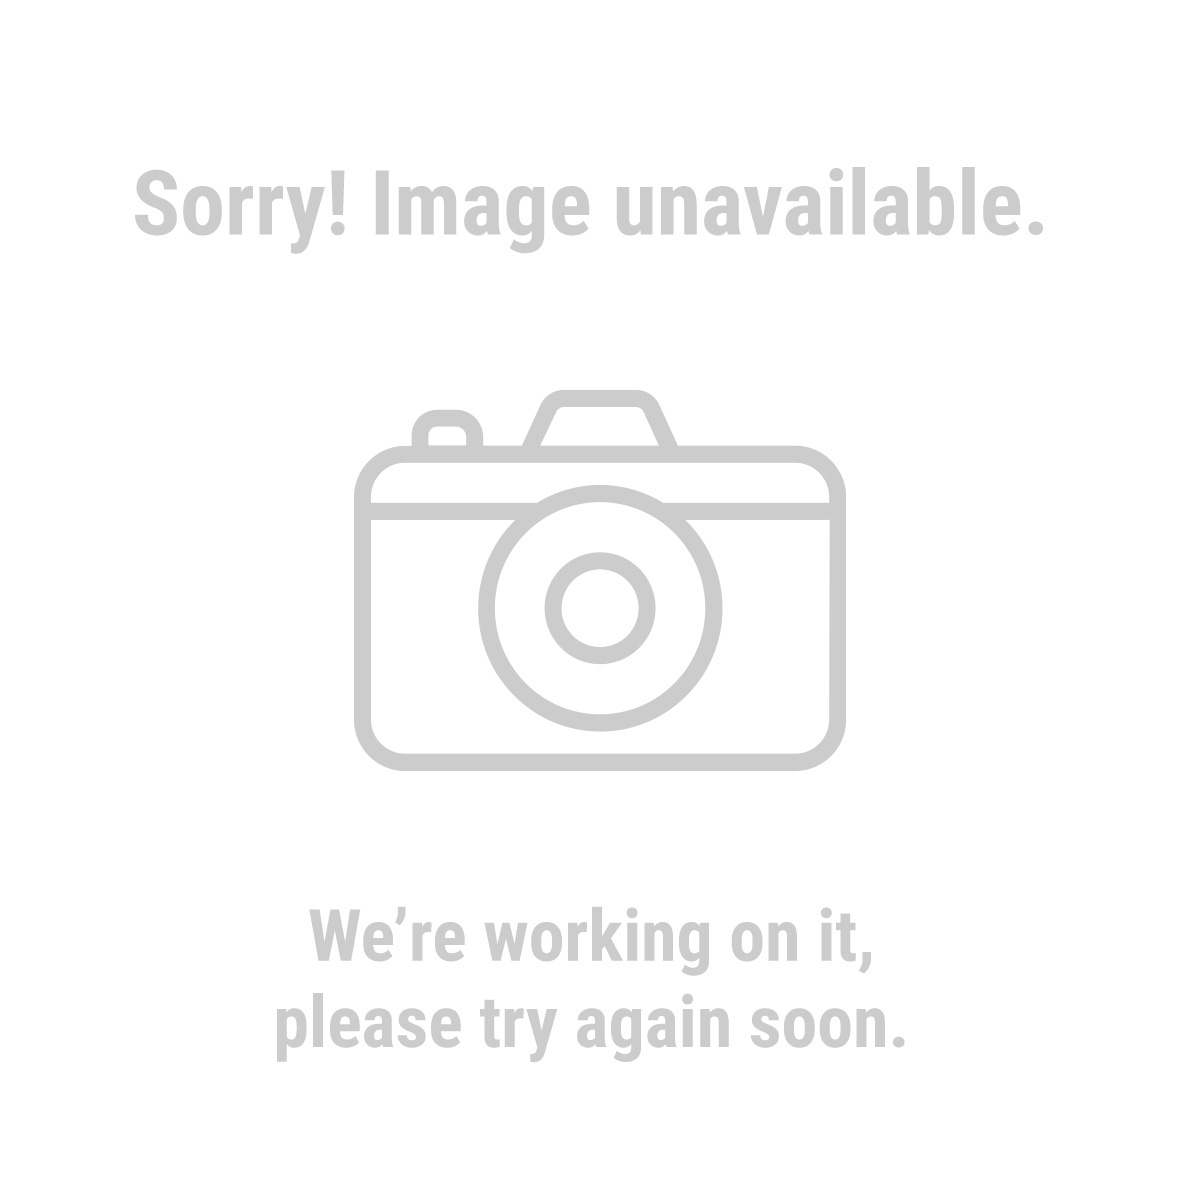 Hydraulic wire crimping tool 10 in cable cutters greentooth Images